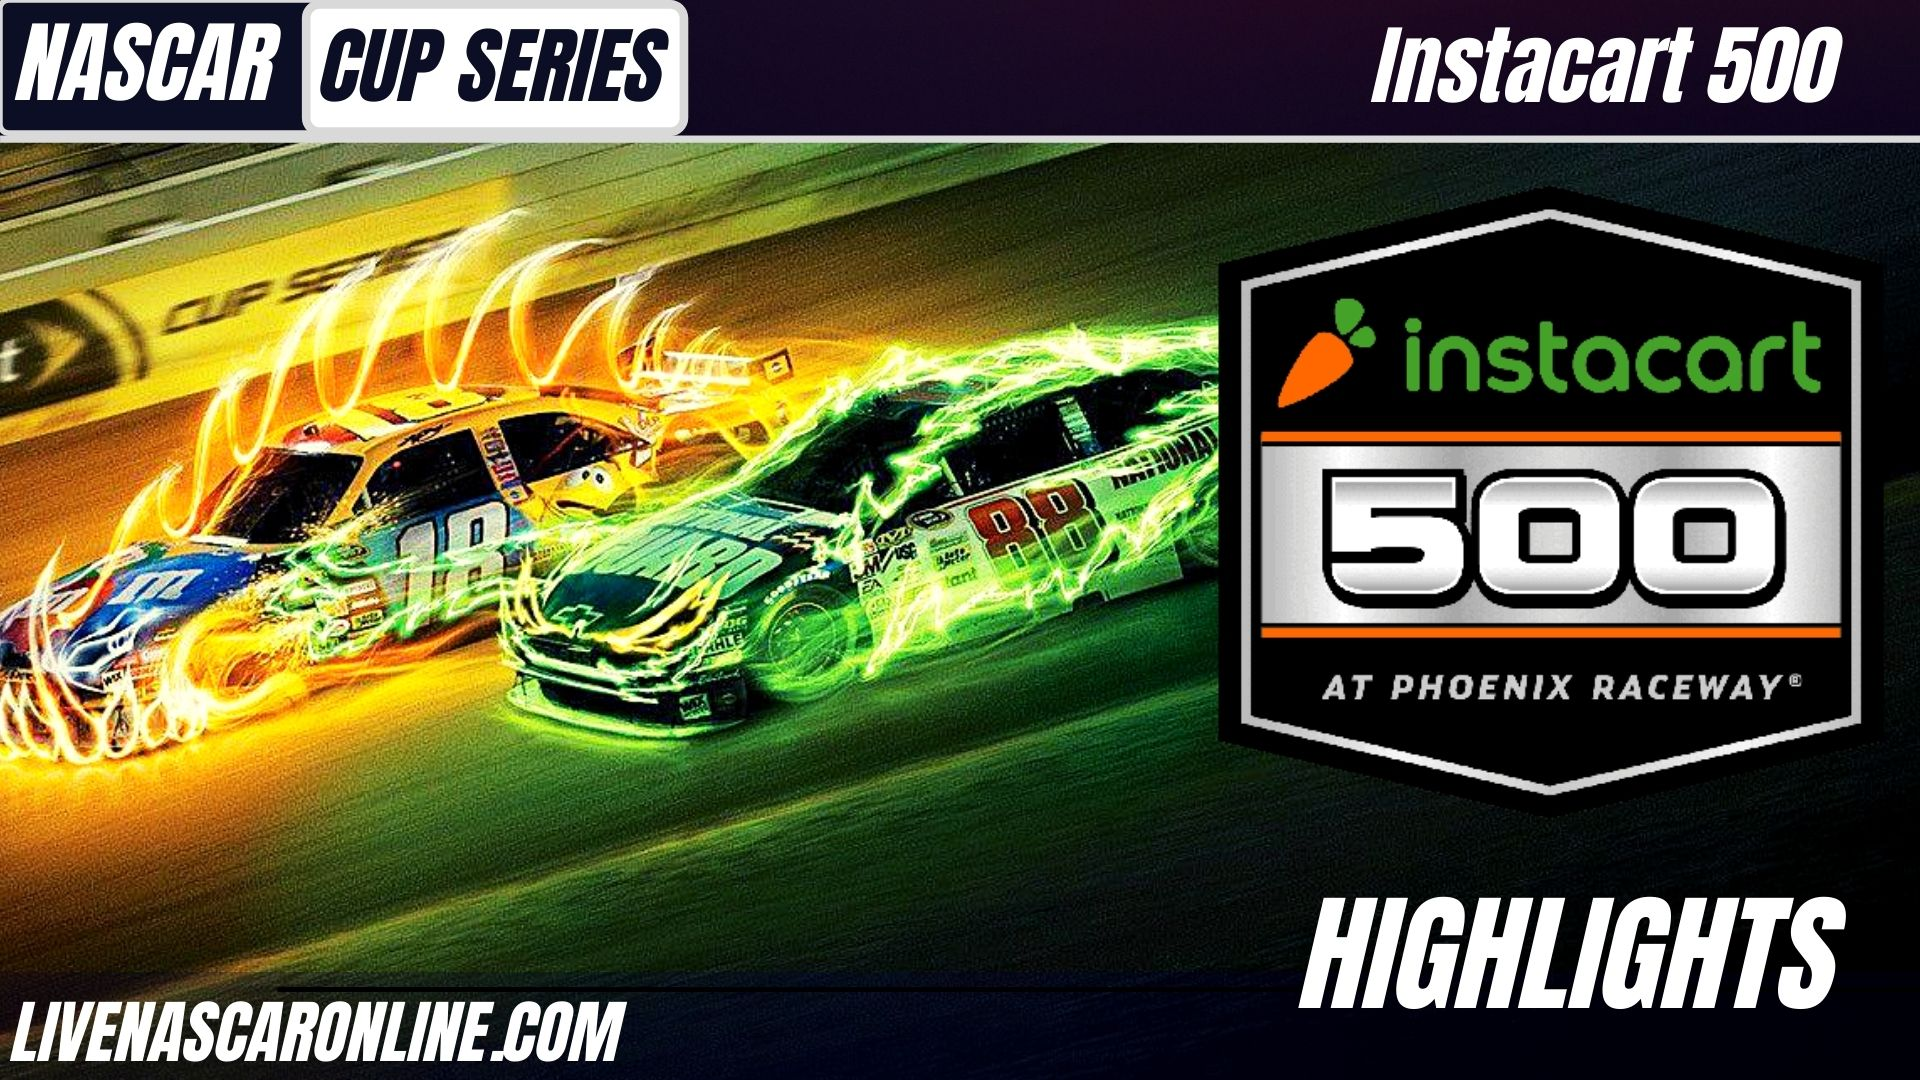 Instacart 500 Highlights 2021 Nascar Cup Series